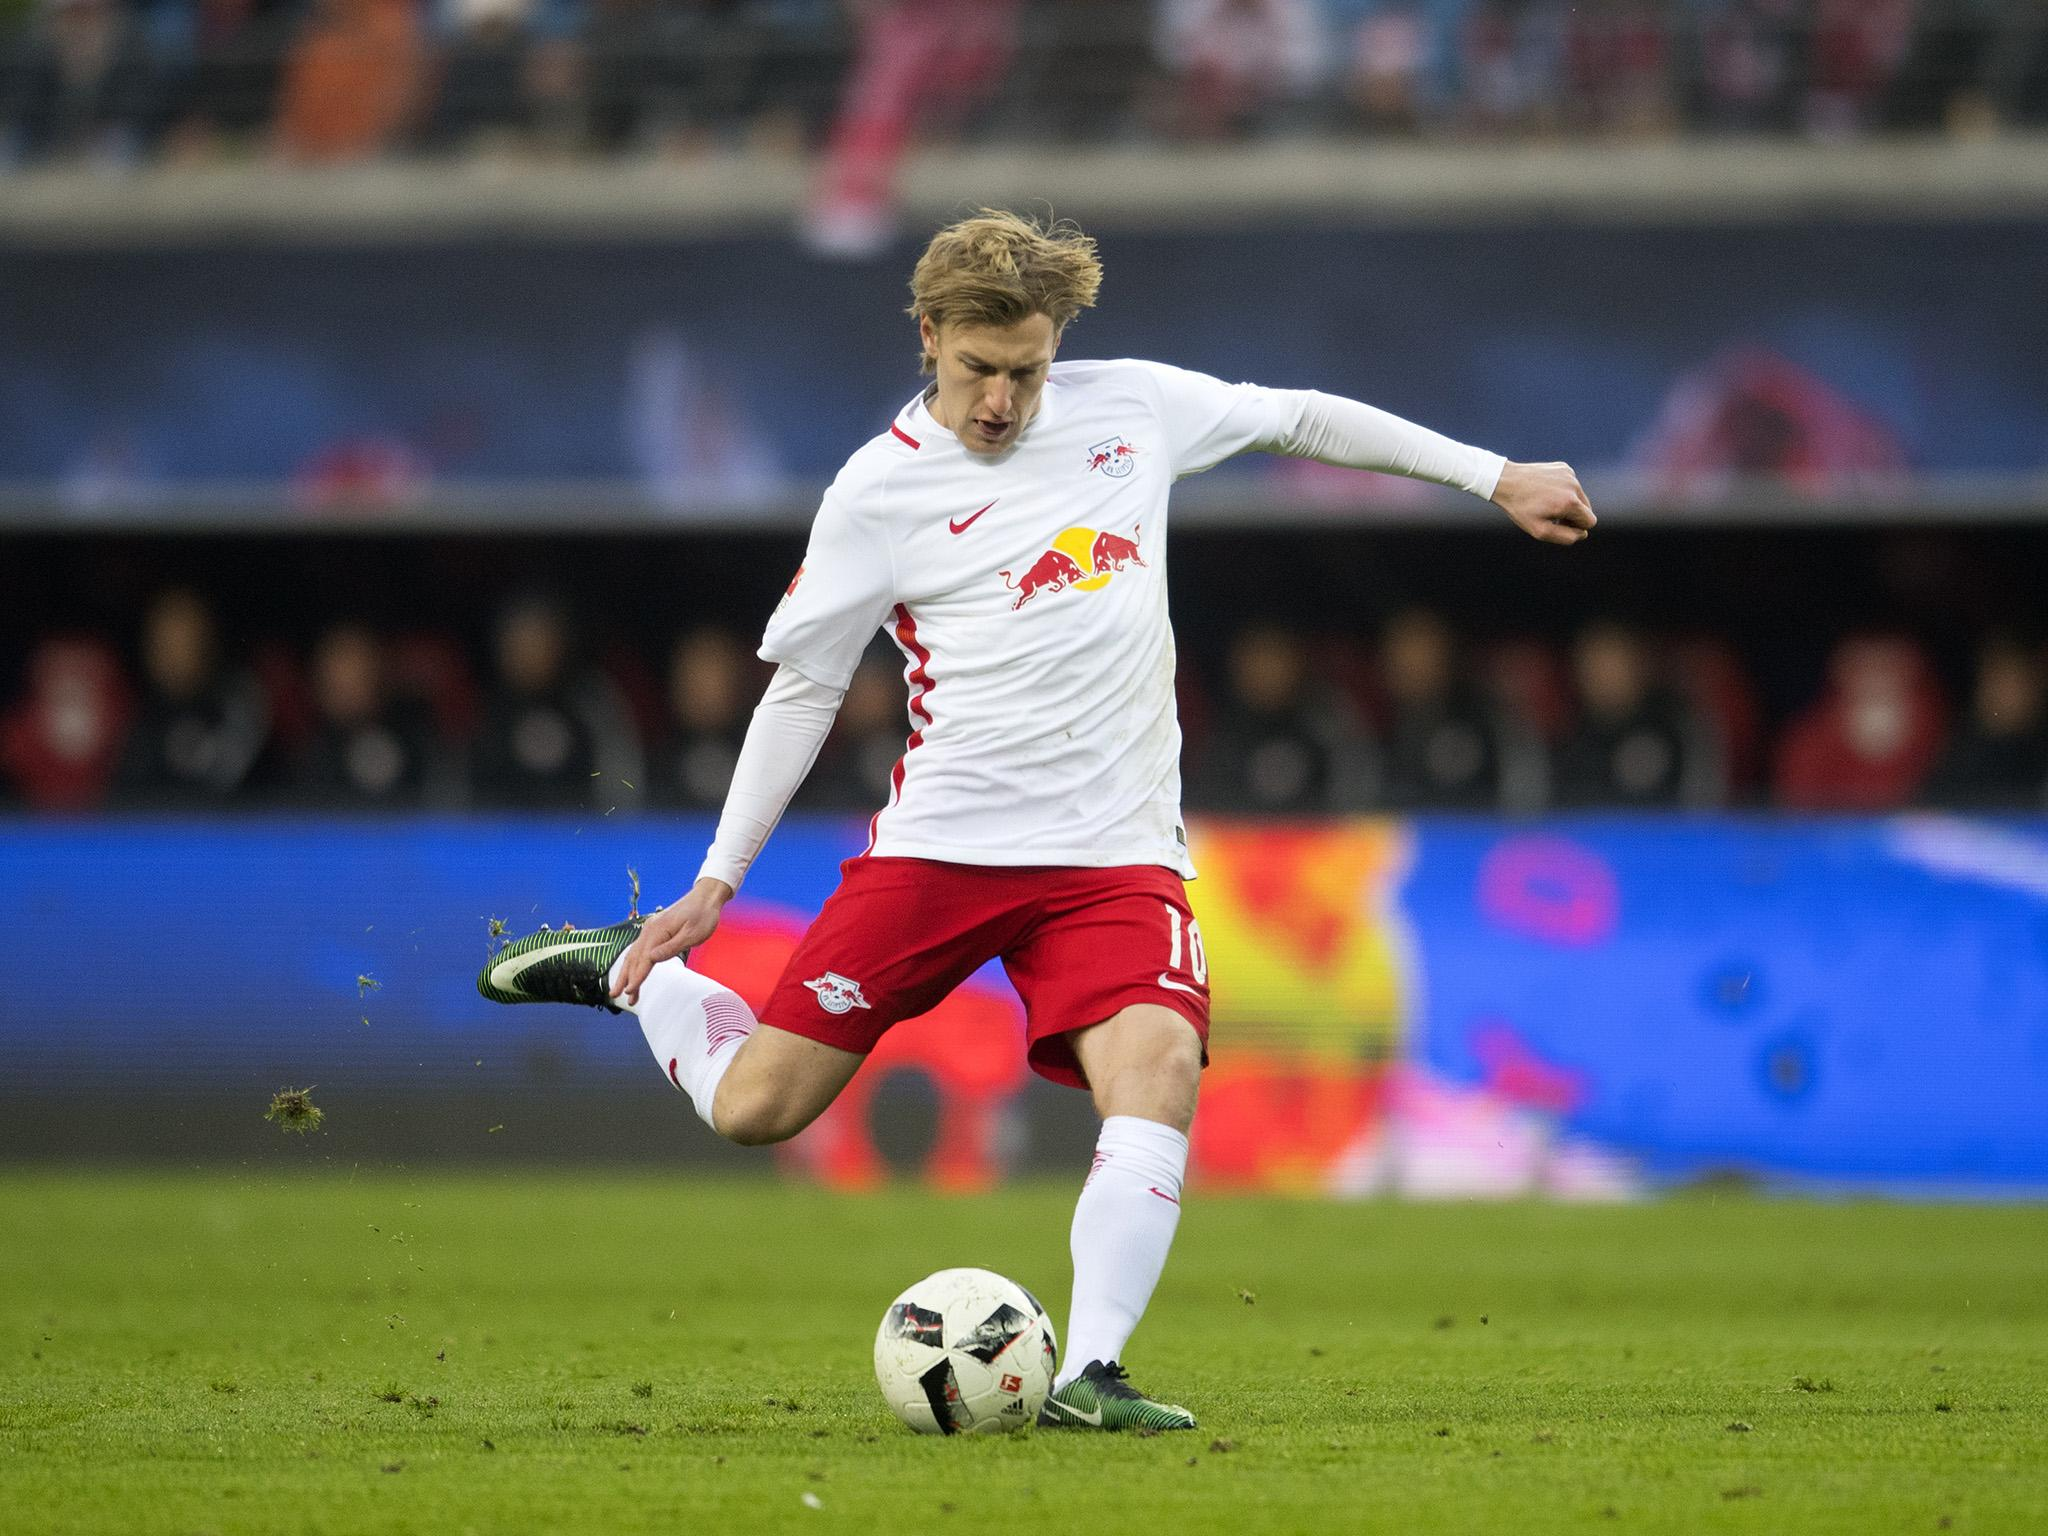 RB Leipzig 'destroying the dreams' of Arsenal target Emil Forsberg by refusing his exit, claims agent